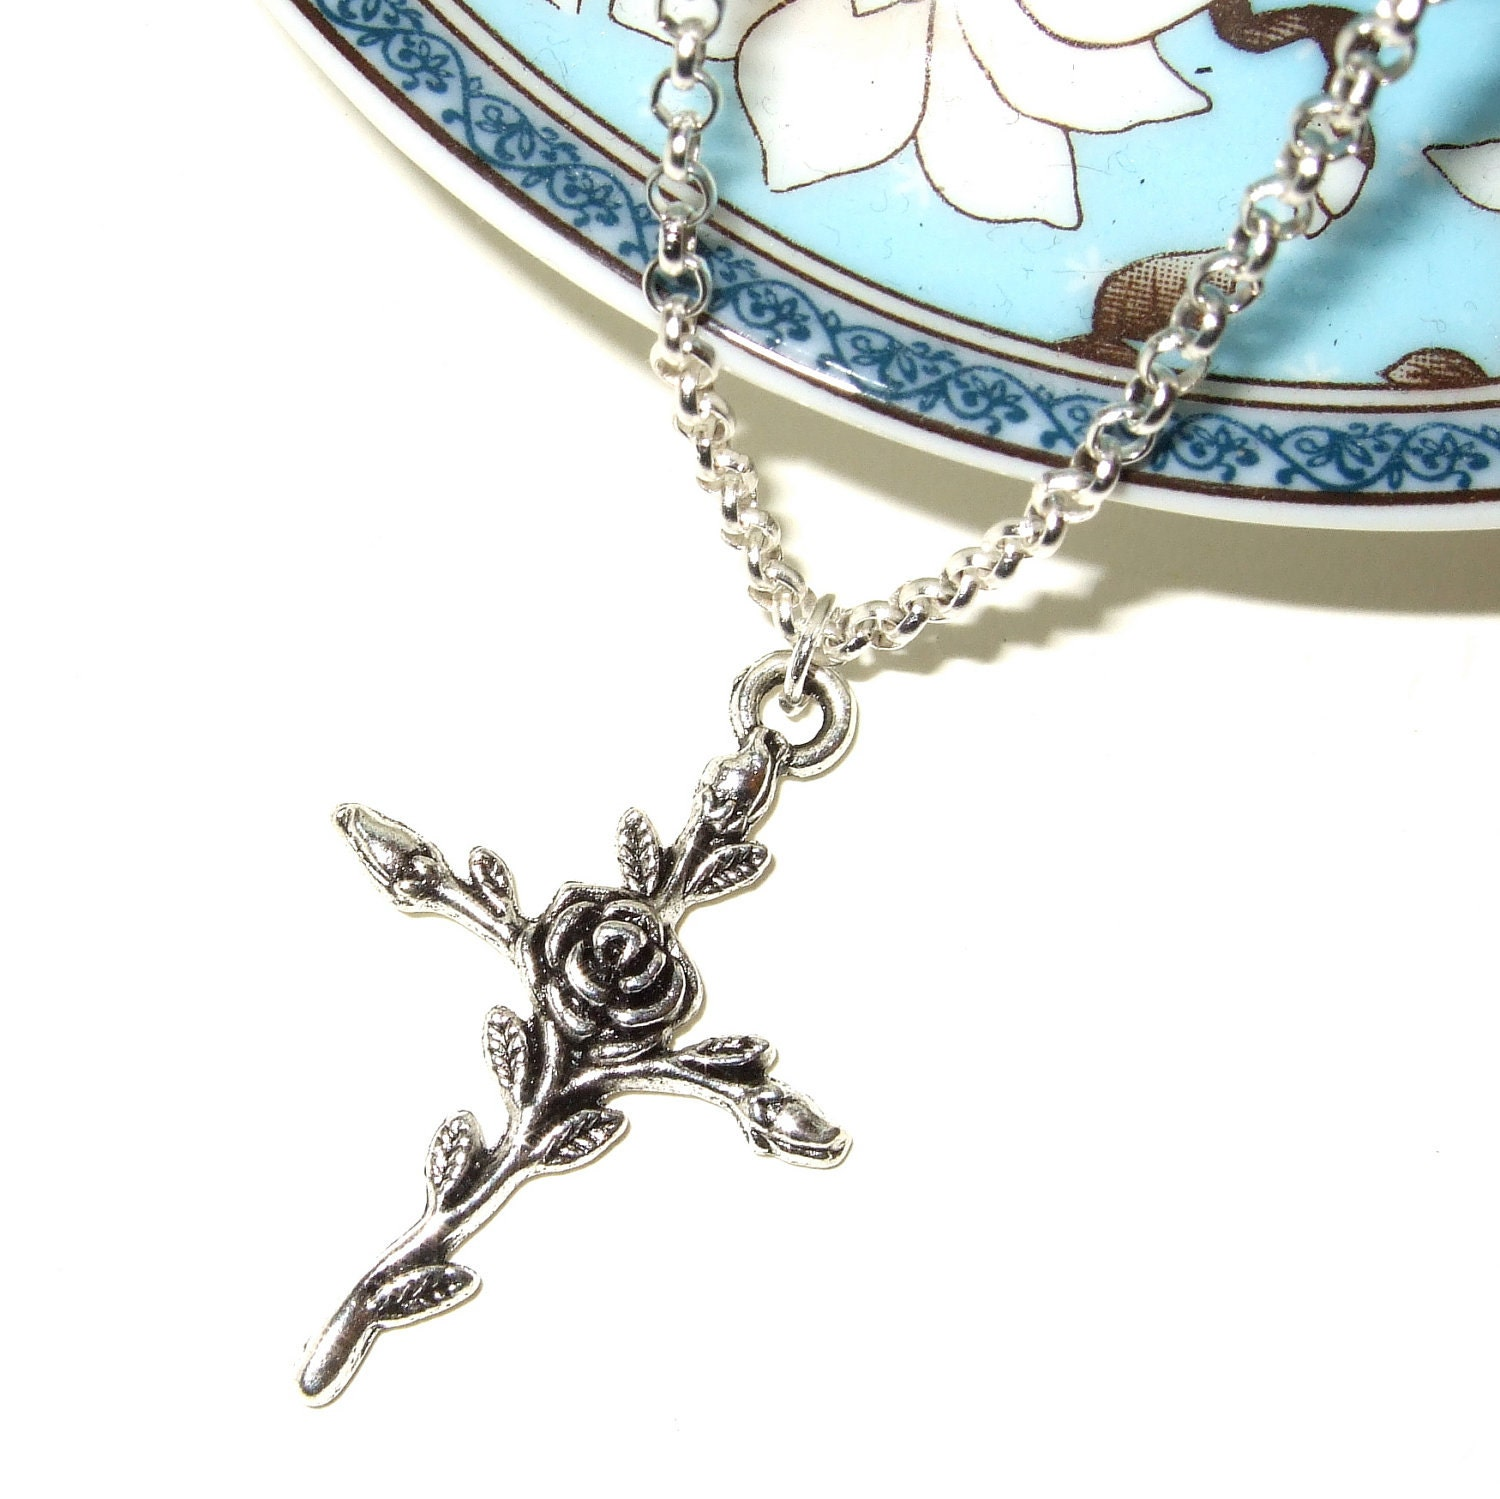 Rose cross necklace images rose cross necklace images rose cross necklace crucifix pendant silver cross simple jpg aloadofball Image collections